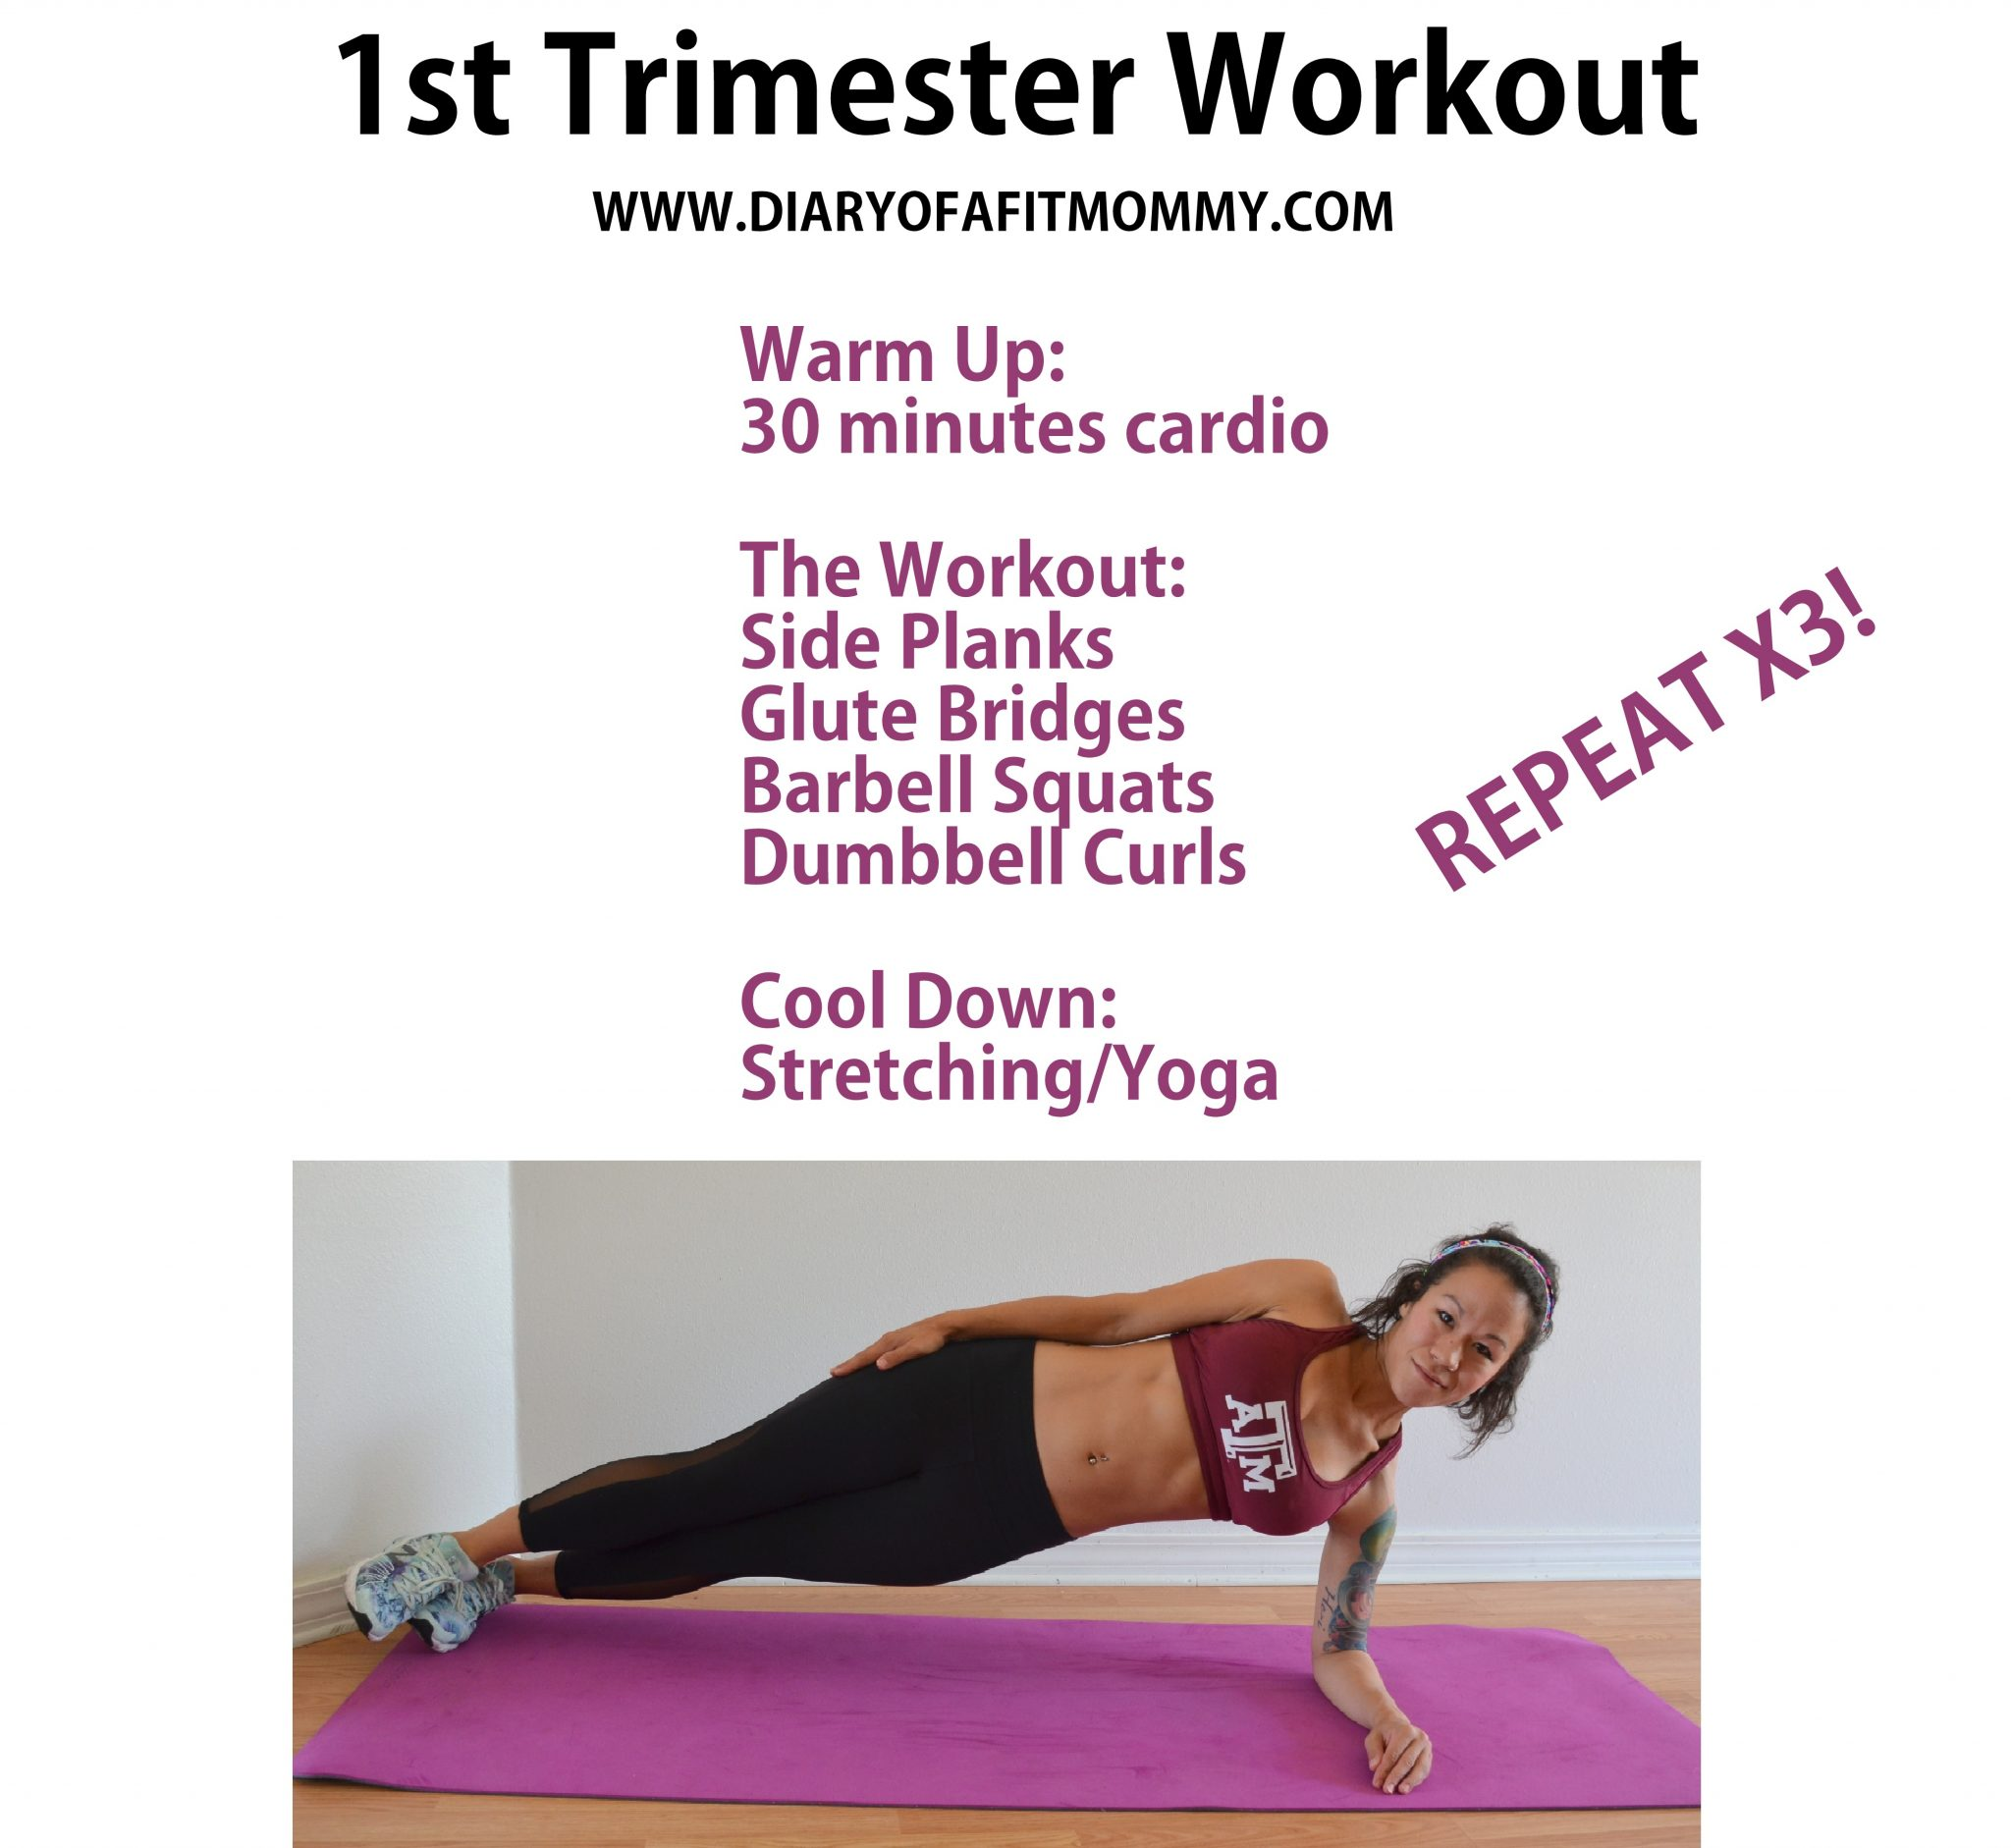 My Favorite Yet Safe First Trimester Pregnancy Workouts Diary Of A Fit Mommy